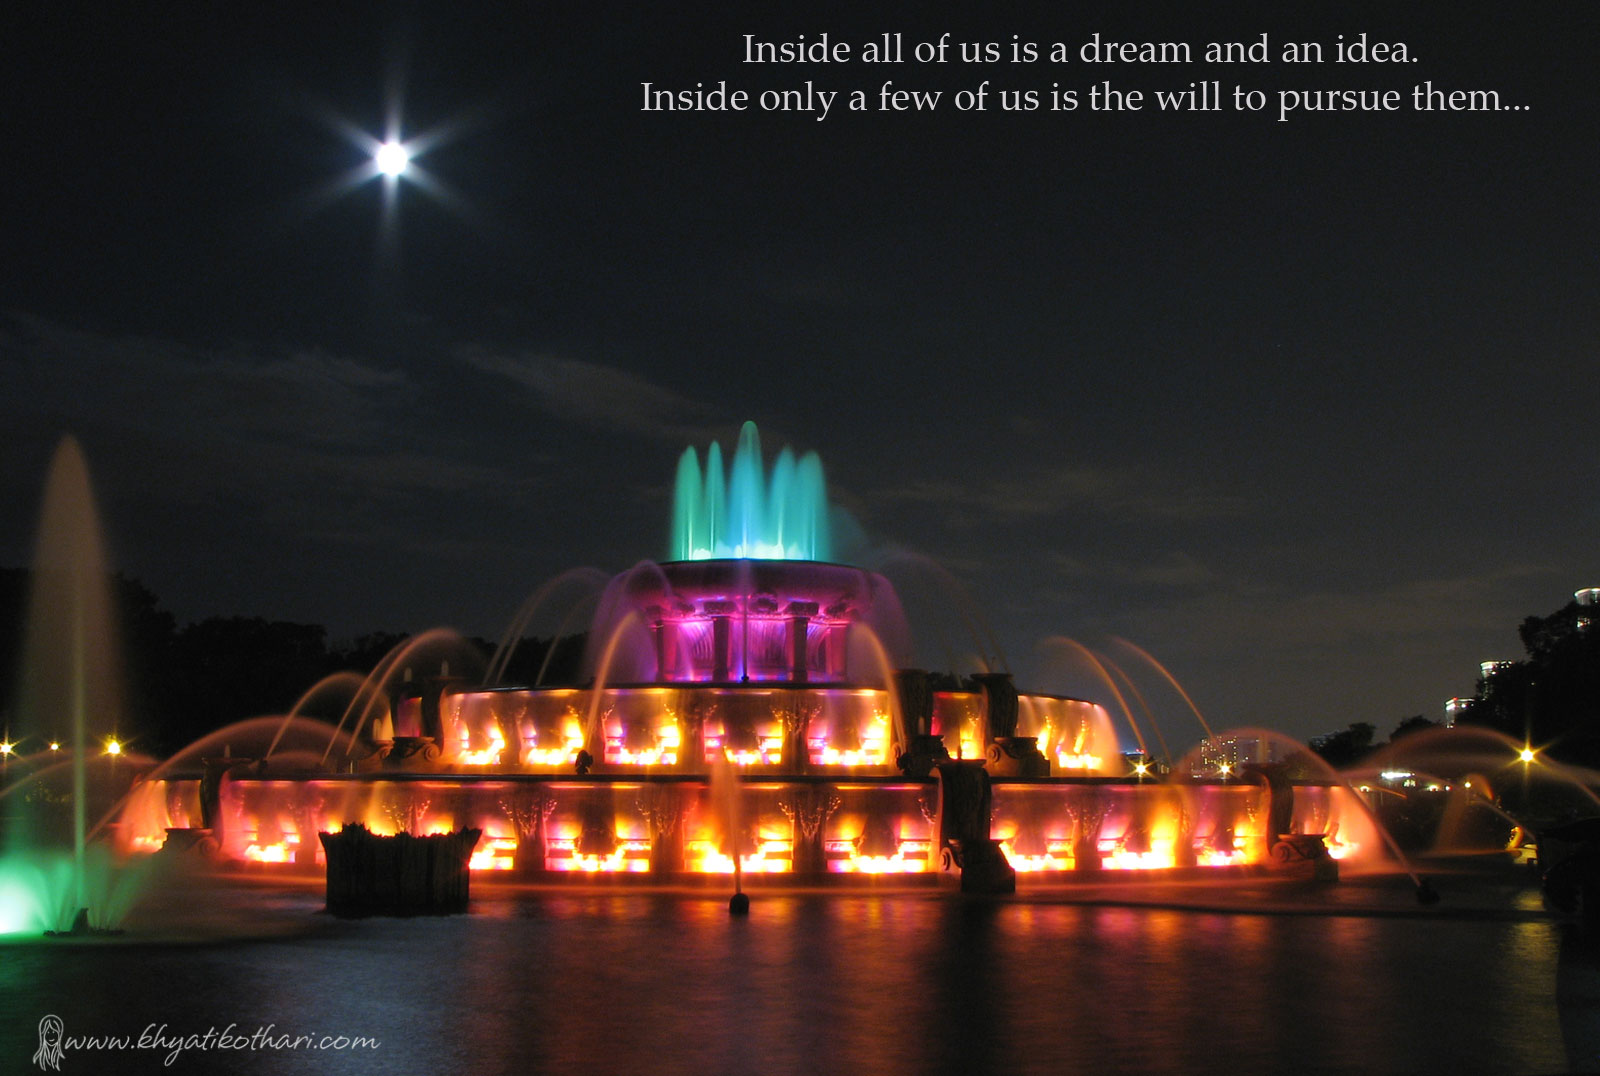 Inside all of us is a dream and an idea.